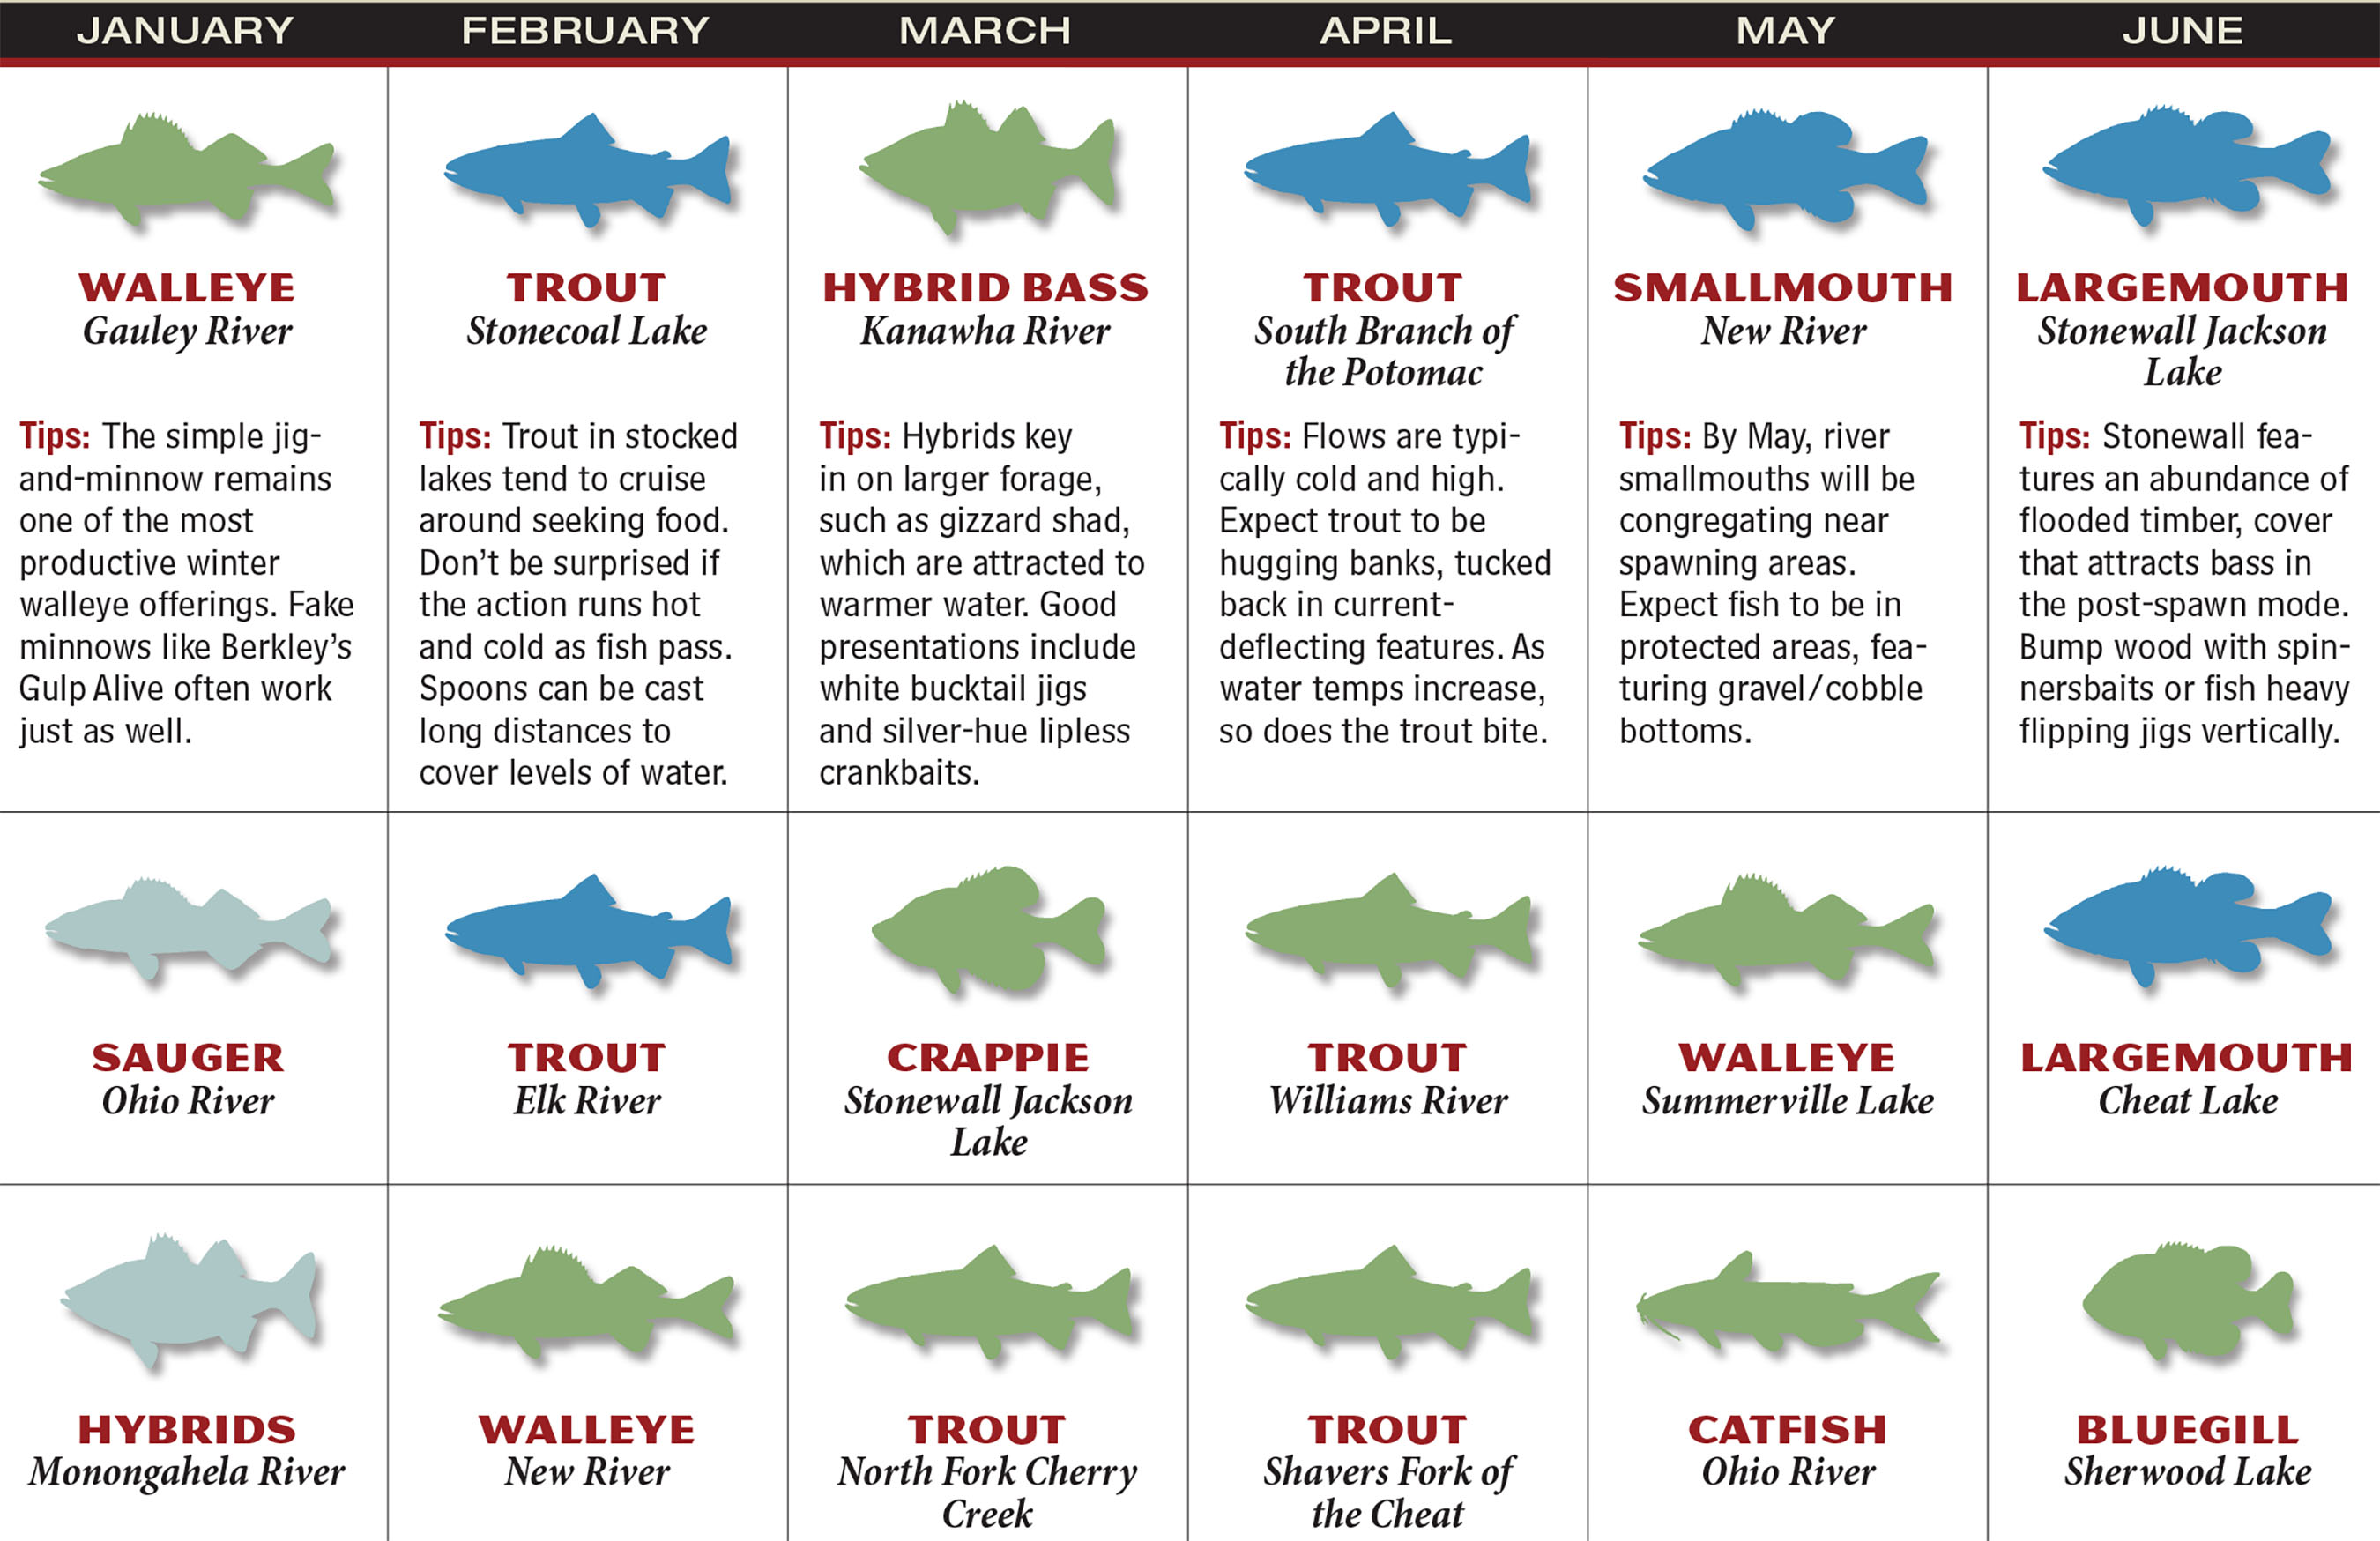 2017 west virginia fishing forecast game fish for Fishing forecast calendar